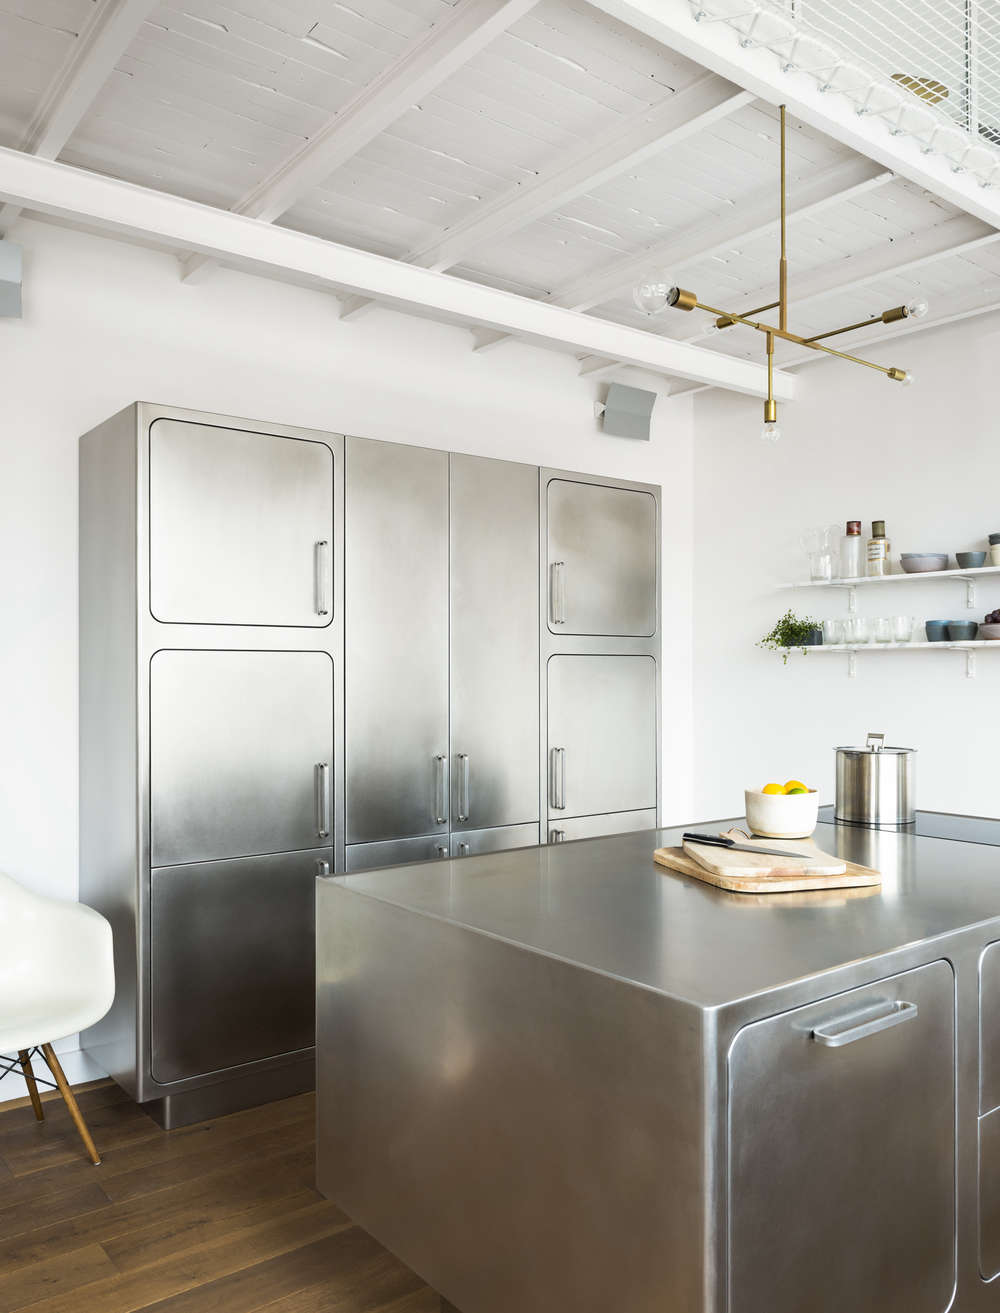 kitchen of the week an all stainless design in a paris loft albimis all stainless steel kitchen in a paris loft by festen architecture remodelista